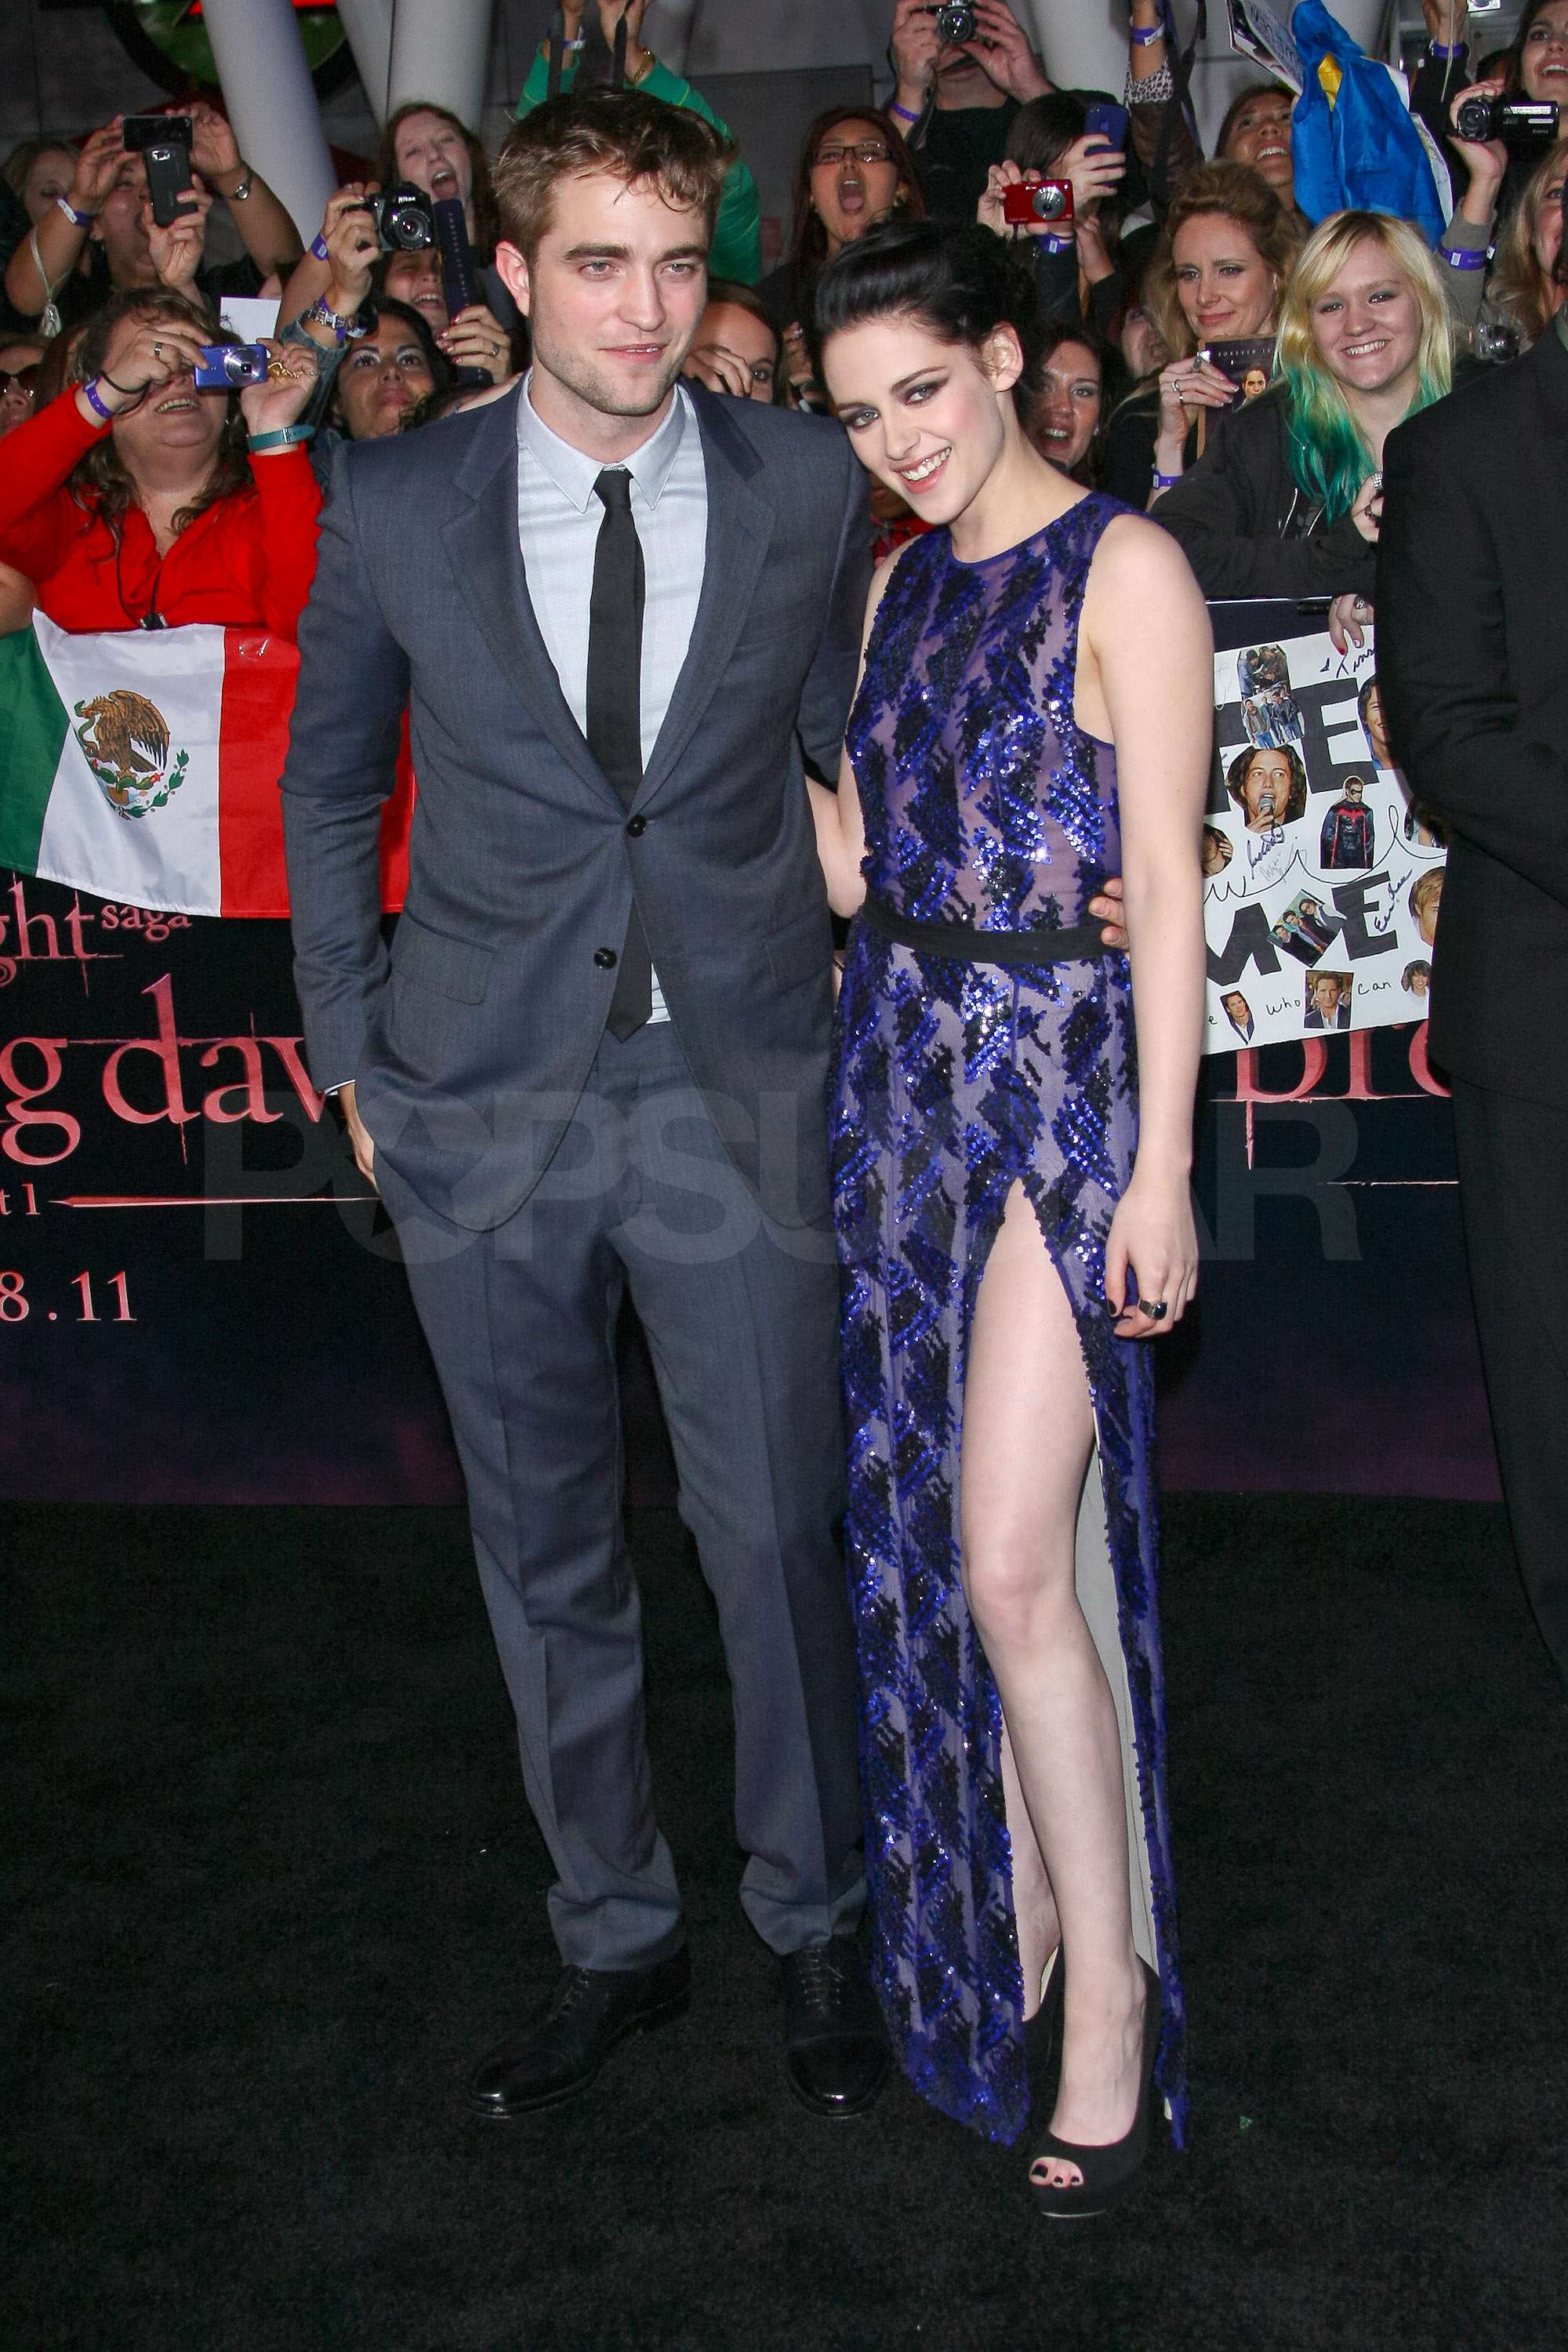 Kristen Stewart and Robert Pattinson held close to each other while they enjoyed their night in the spotlight.